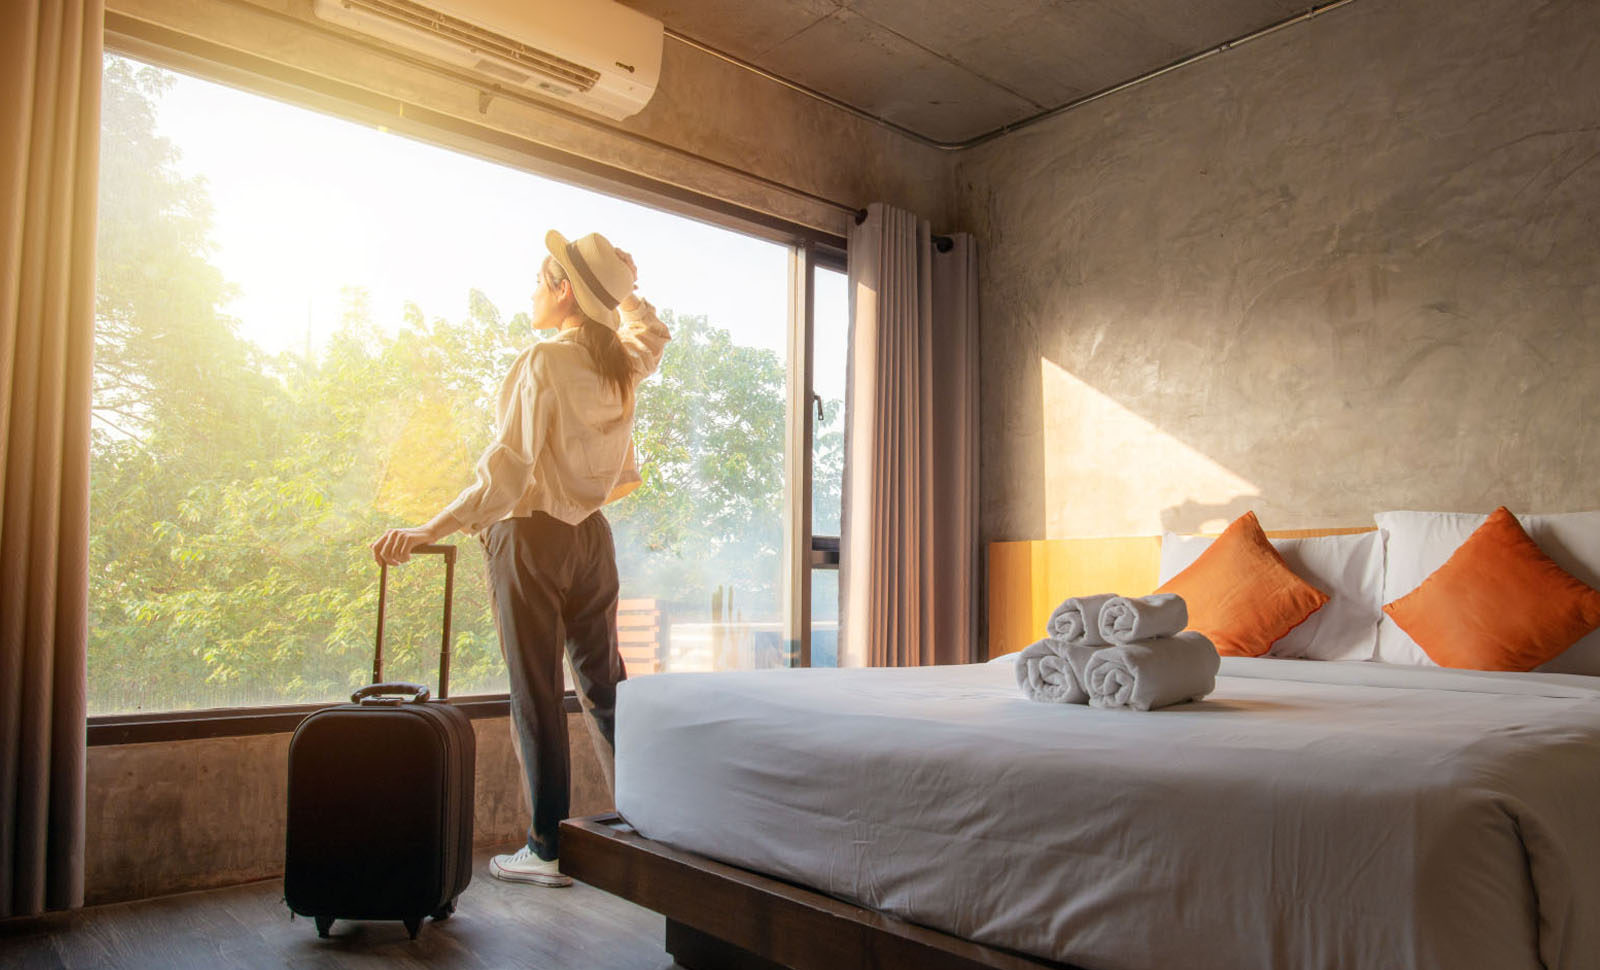 Woman looking out the window of her hotel room holding her luggage in one hand.